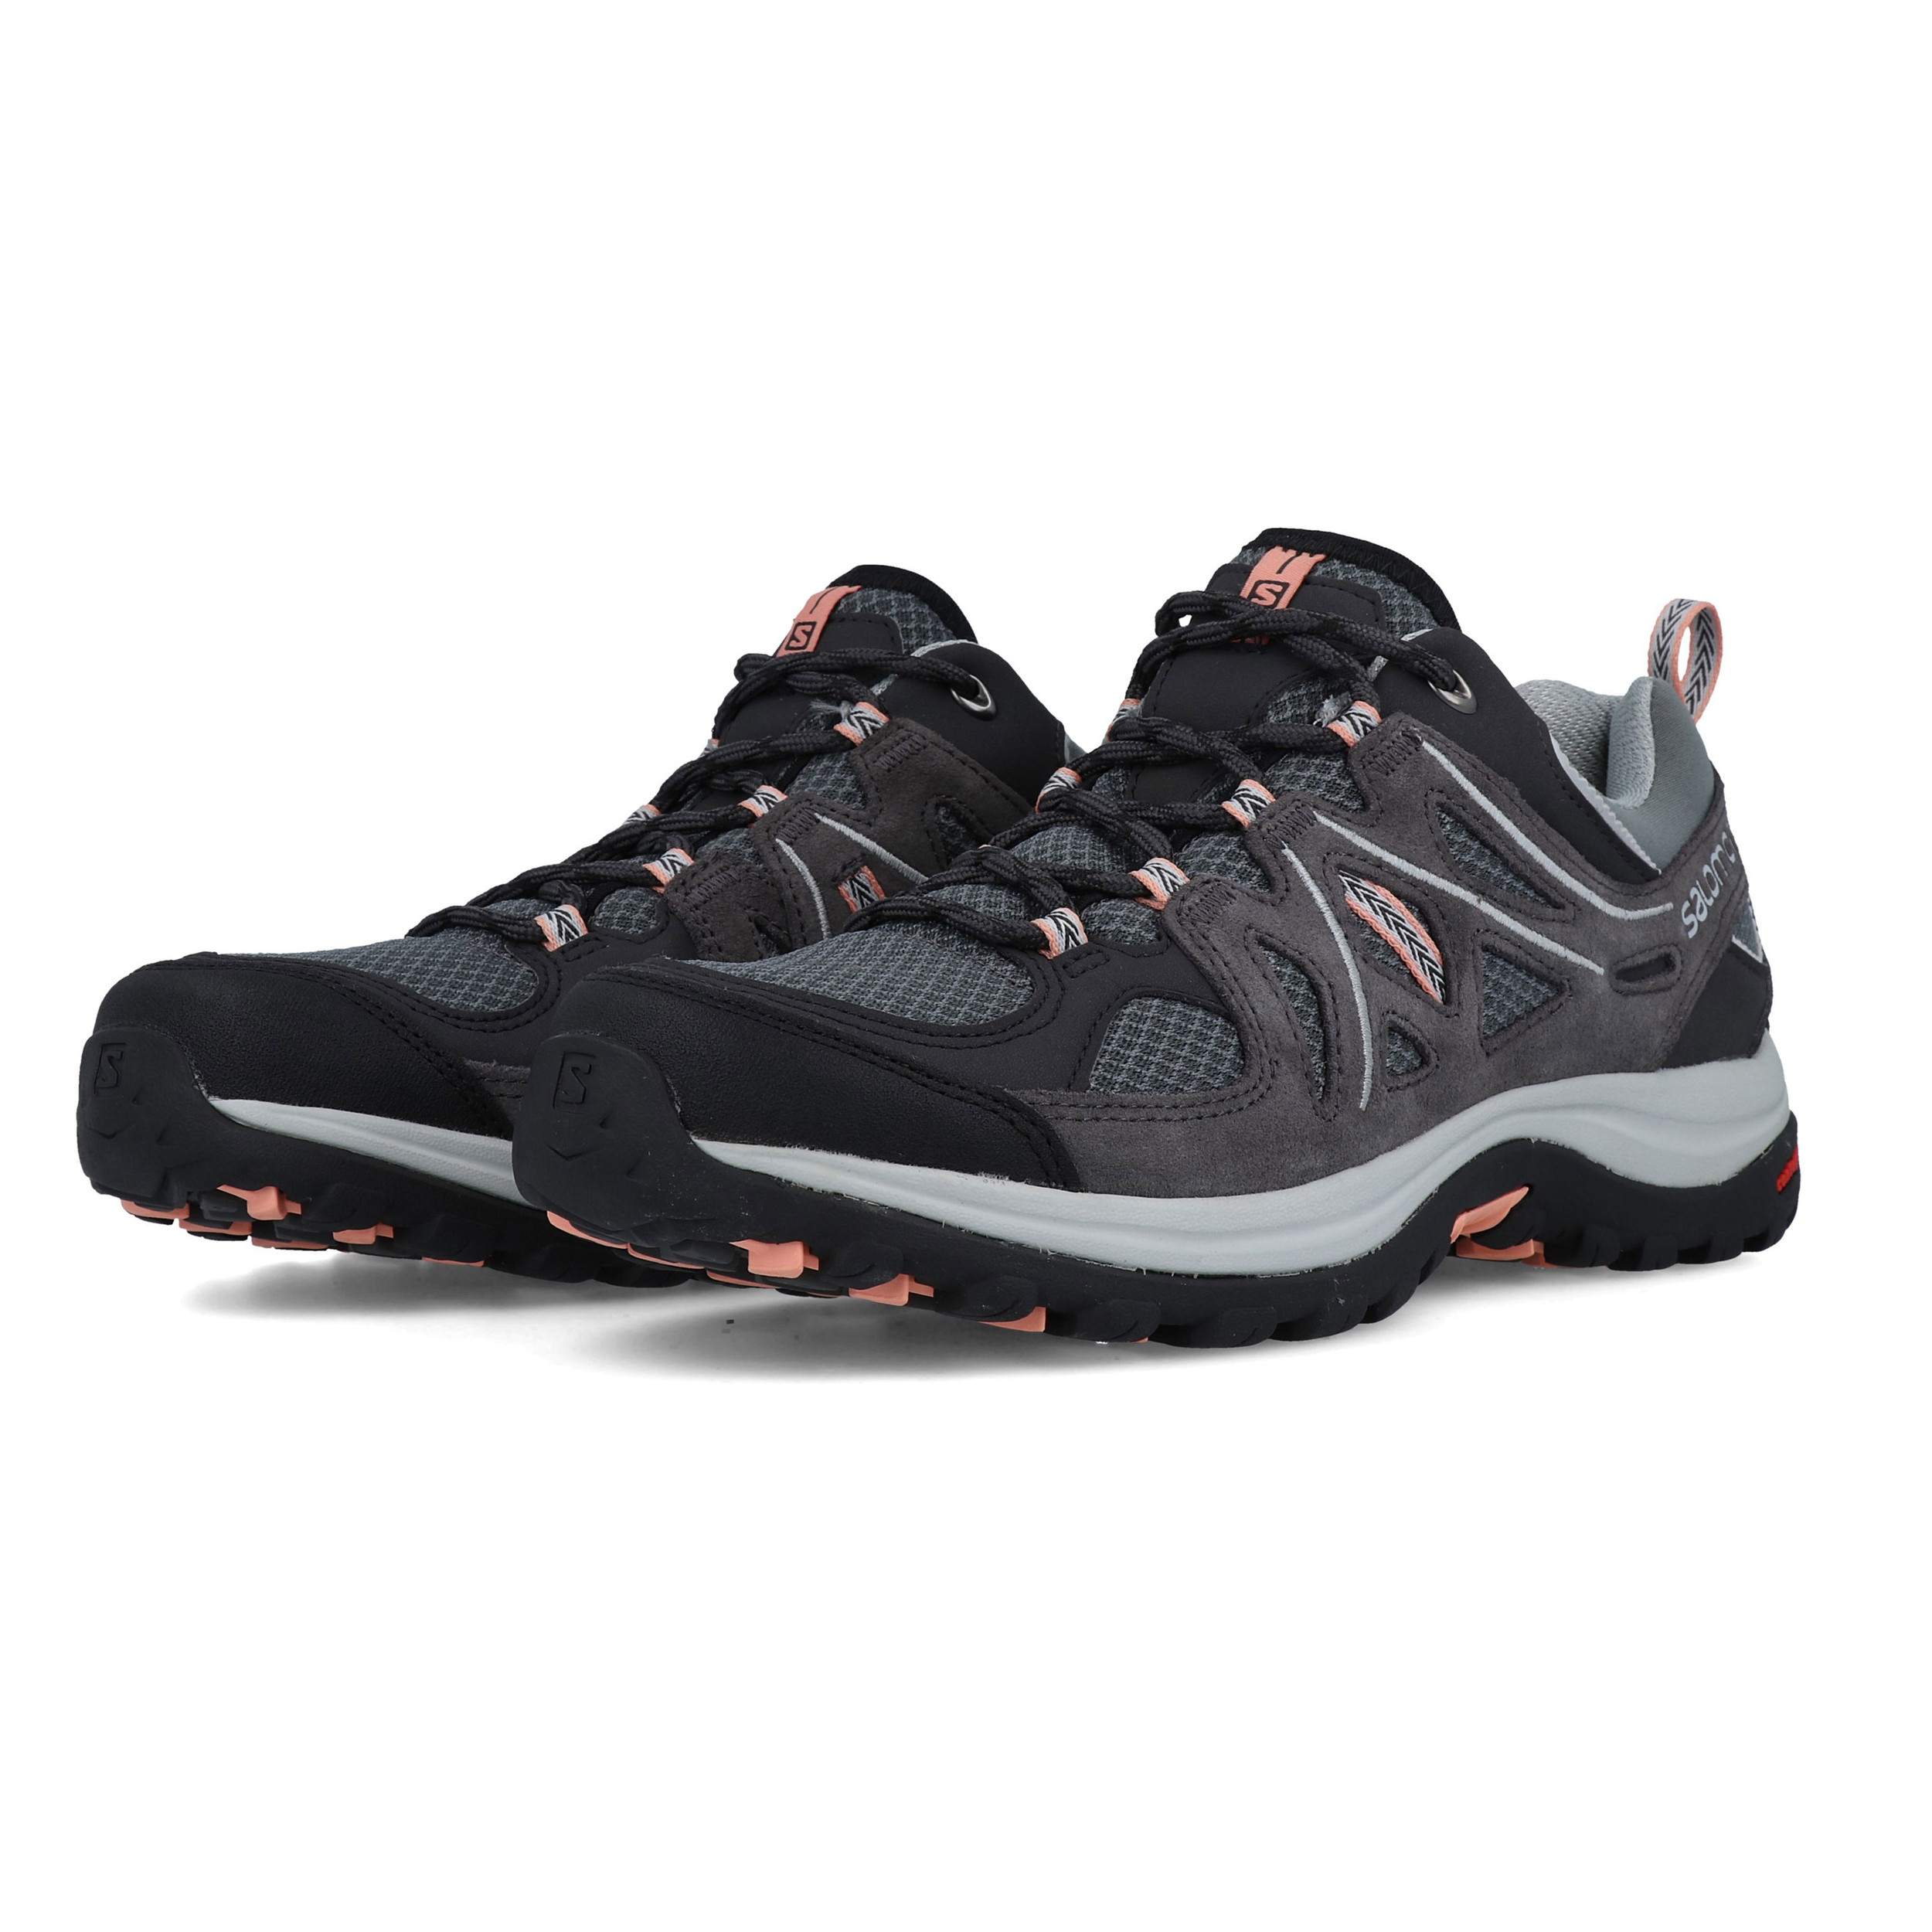 Shoes Ellipse 2 Salomon Walking Sports Breathable Womens Aero Grey PXTUZ